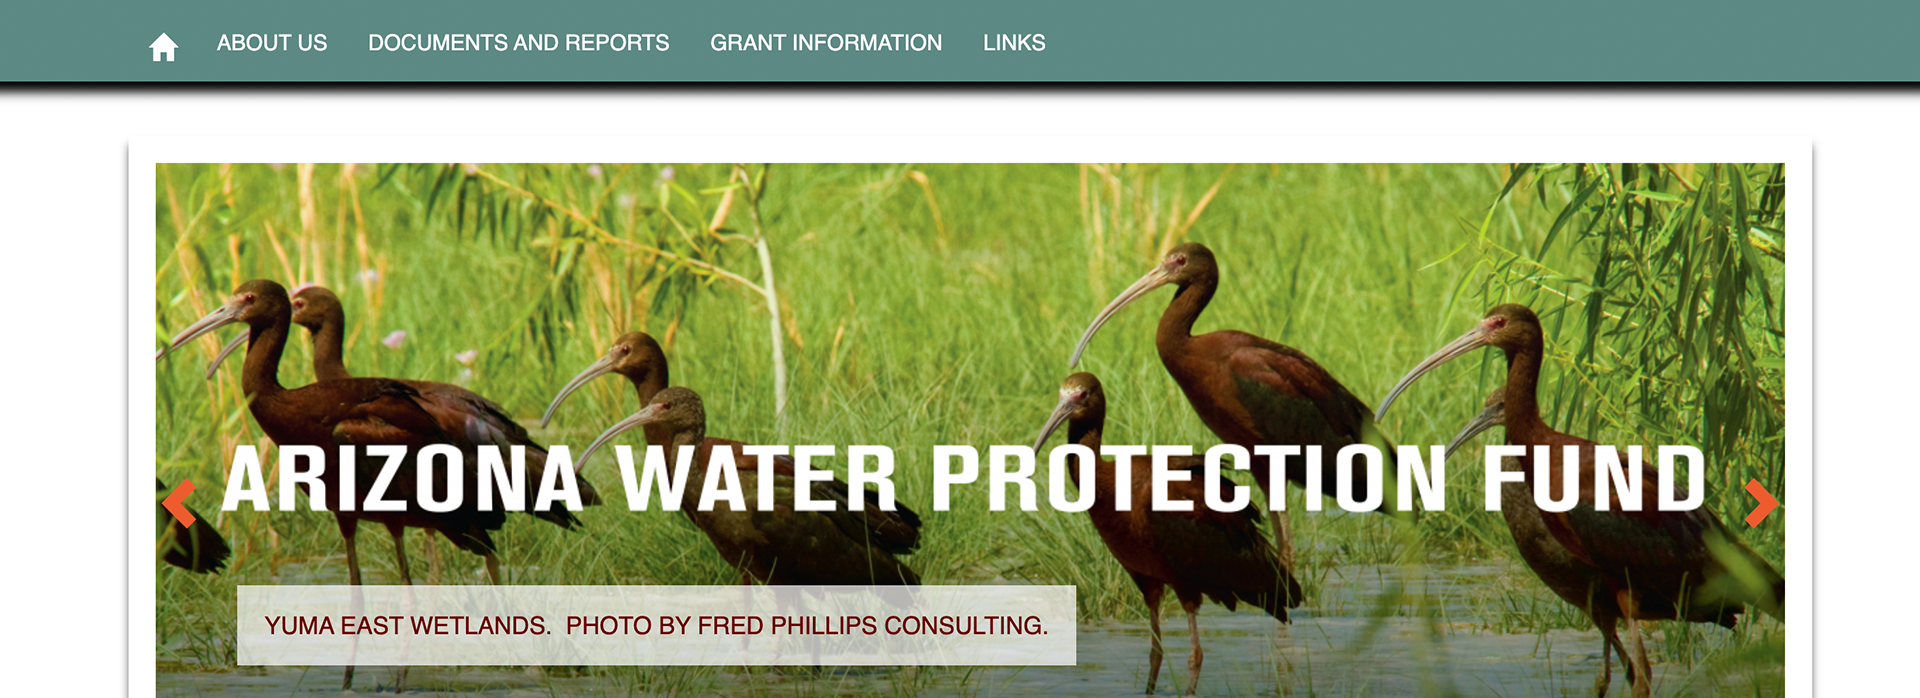 Arizona Water Protection Fund New Website